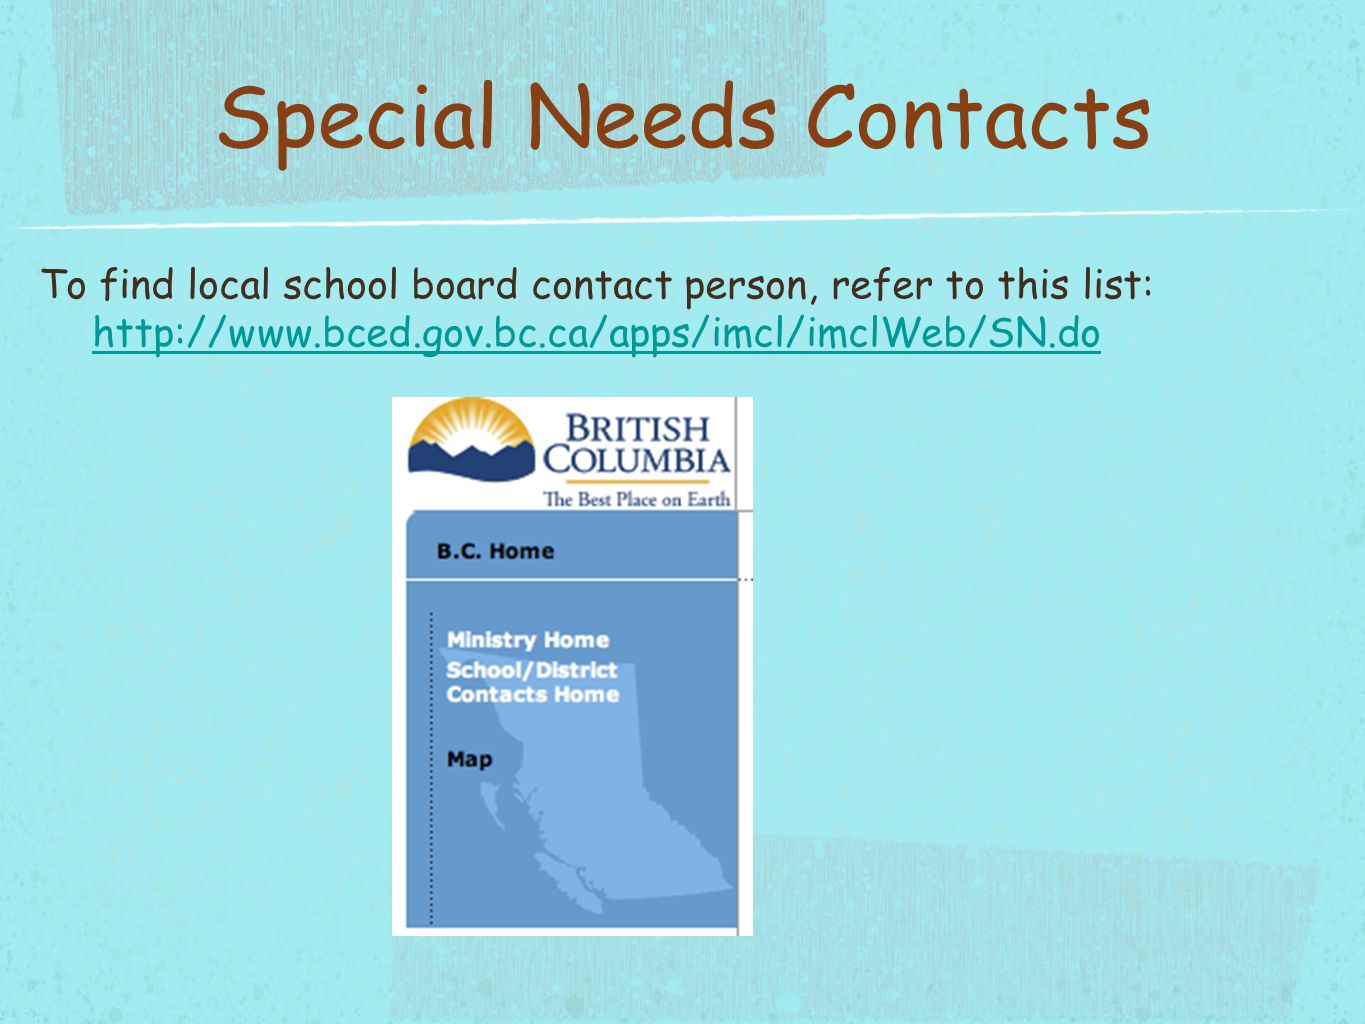 Special Needs Contacts To find local school board contact person, refer to this list: http://www.bced.gov.bc.ca/apps/imcl/imclWeb/SN.do